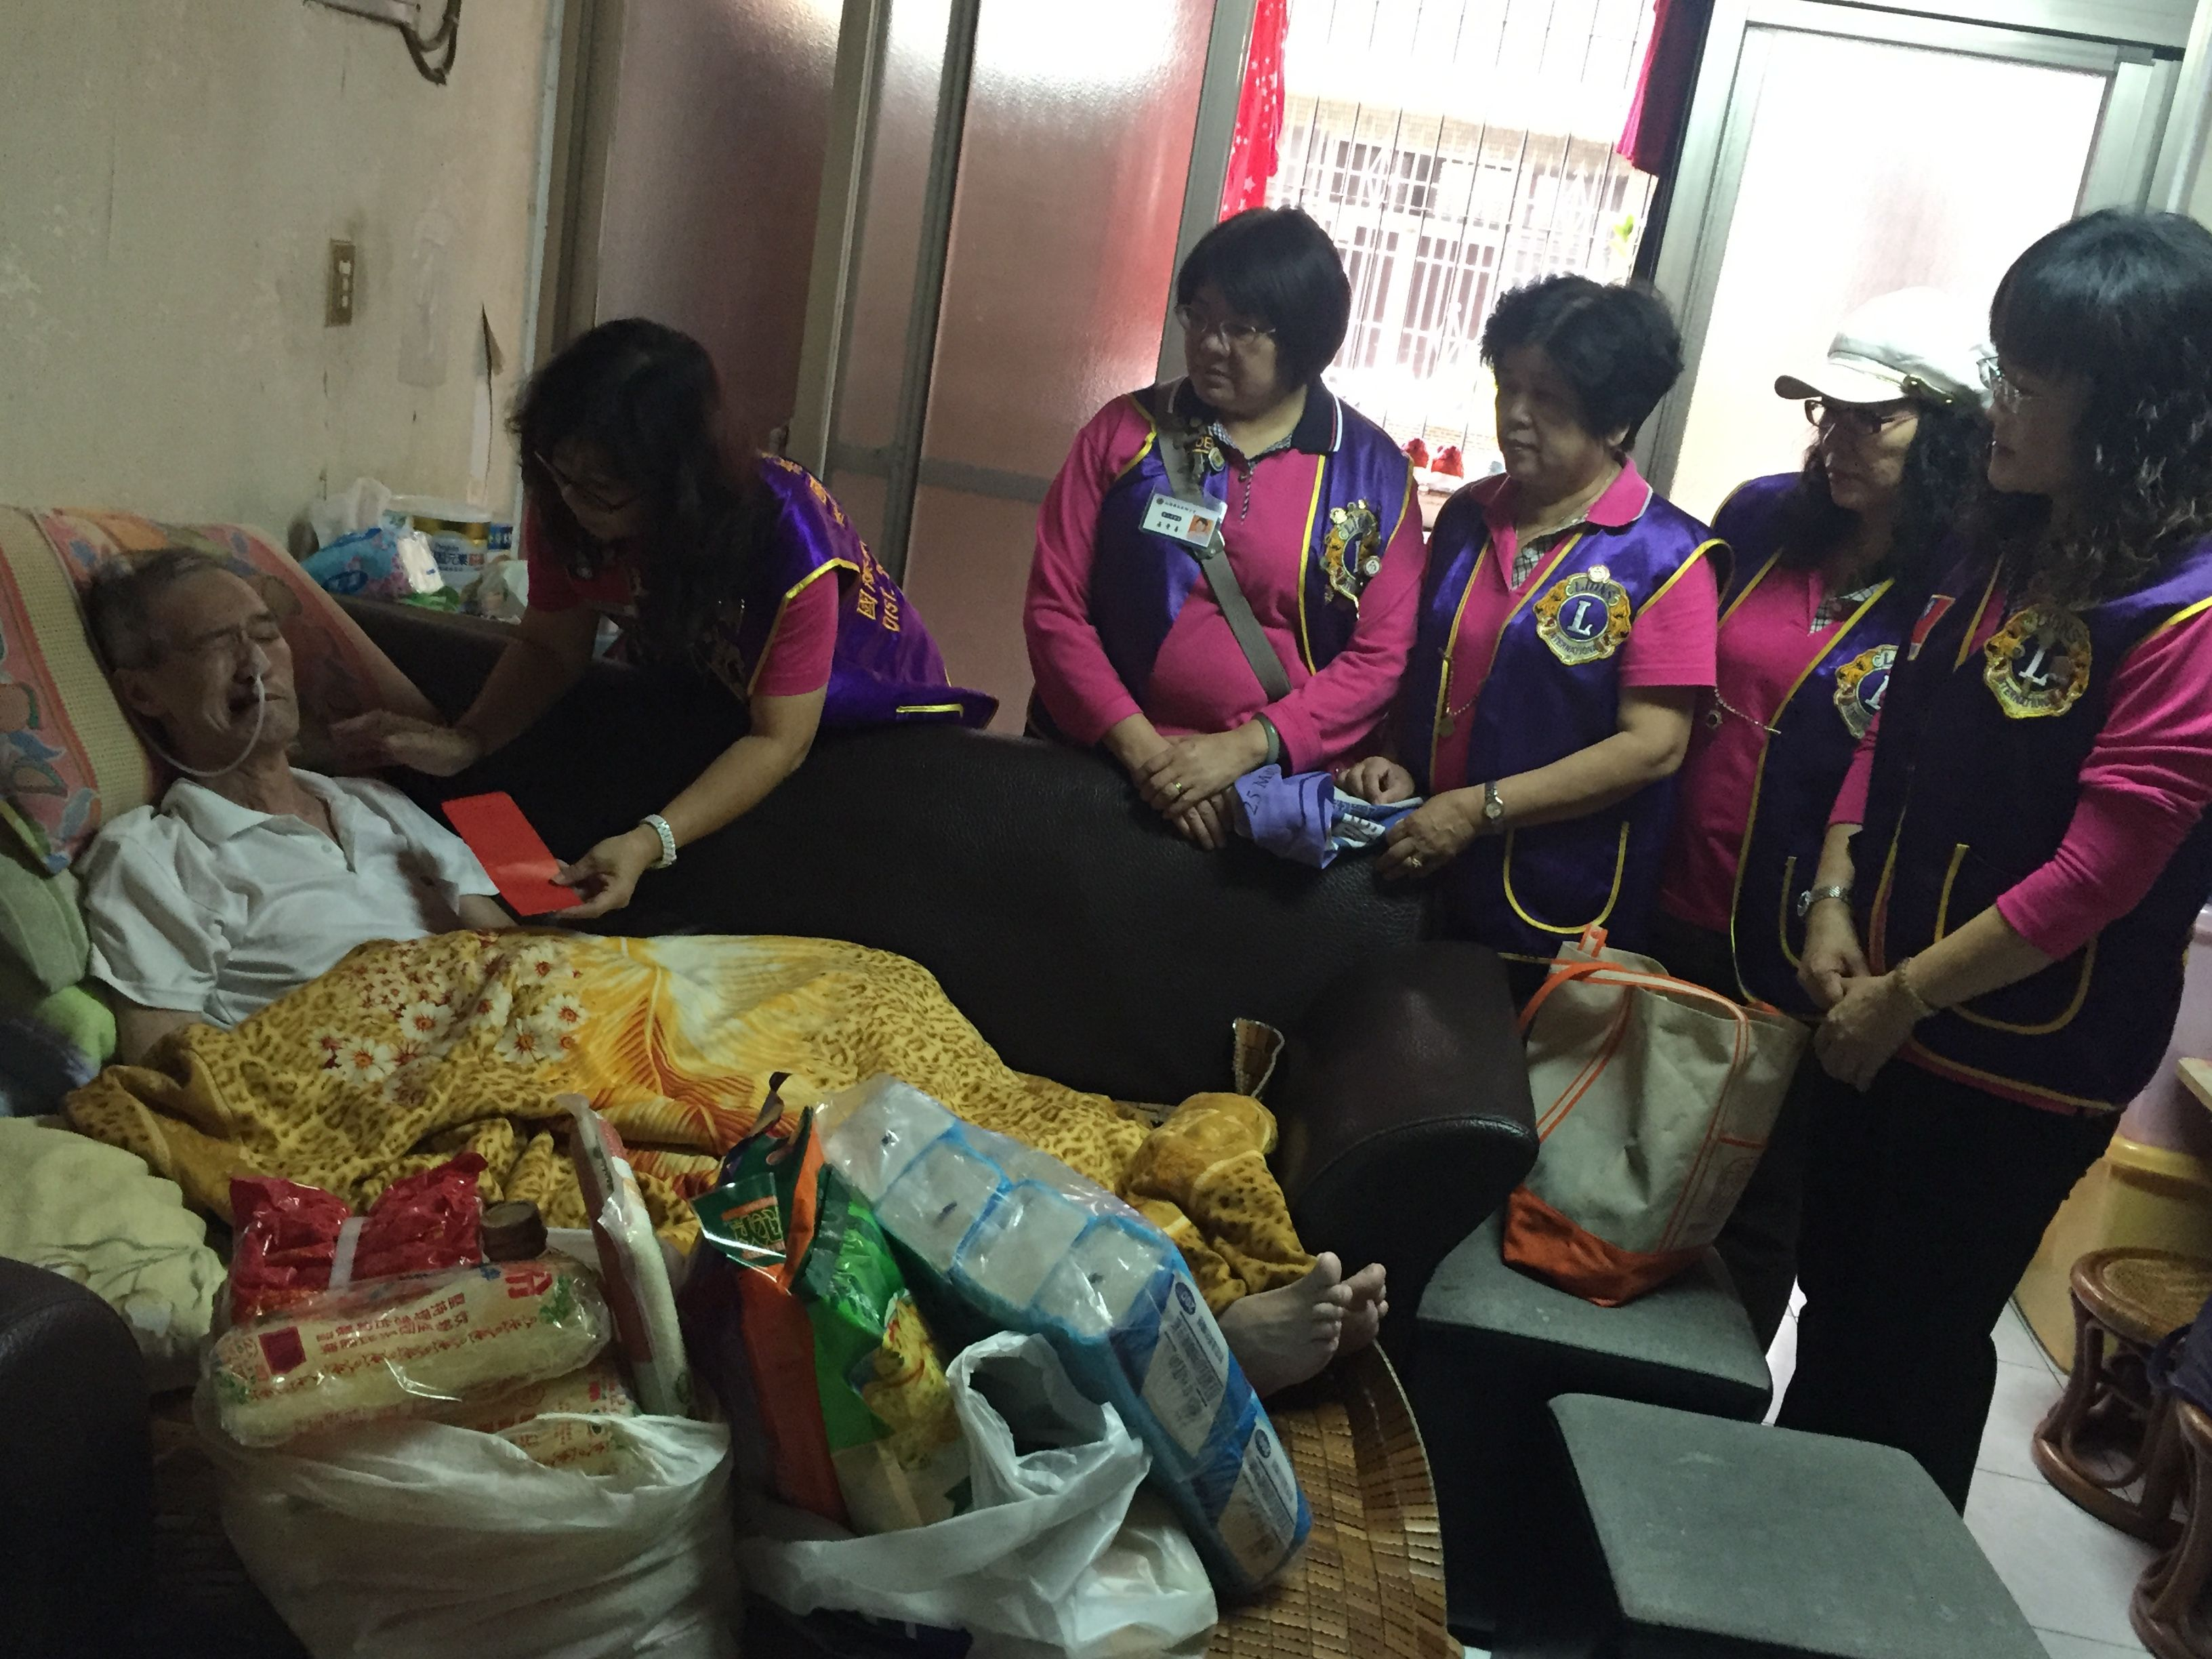 Chernuei #LionsClub (Taiwan) Visited people in need to provide assistance and deliver supplies